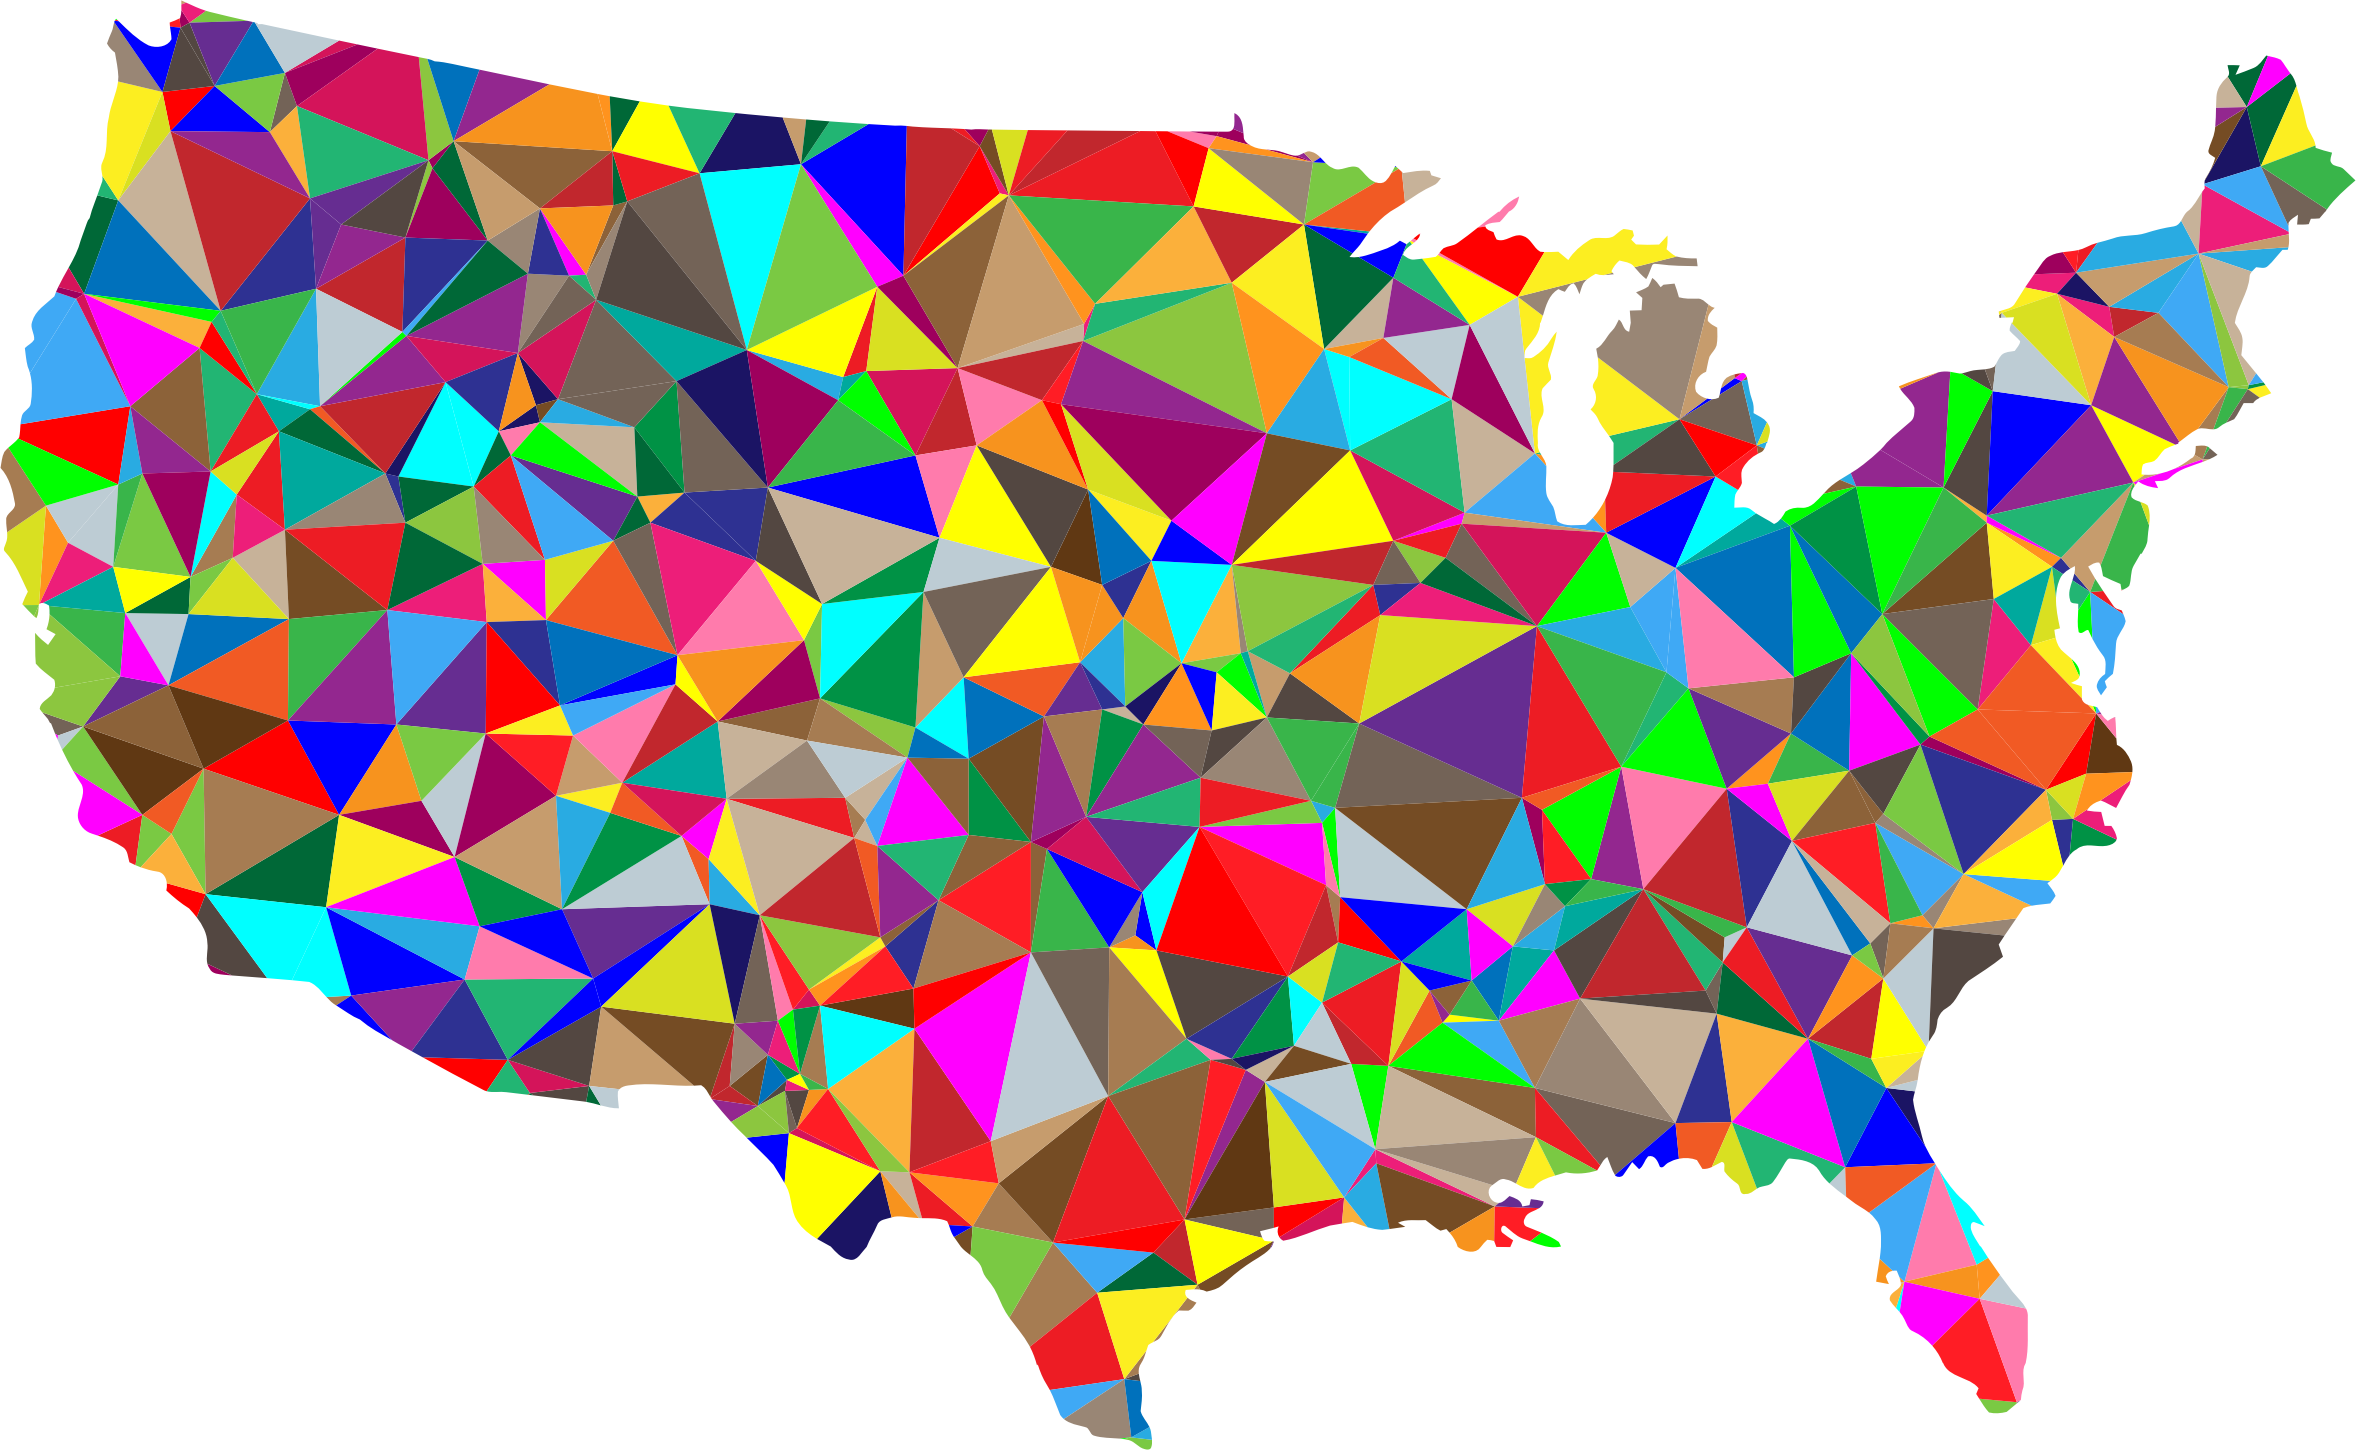 Us map clip art image download Flat Color Low Poly America USA Map Icons PNG - Free PNG and Icons ... image download